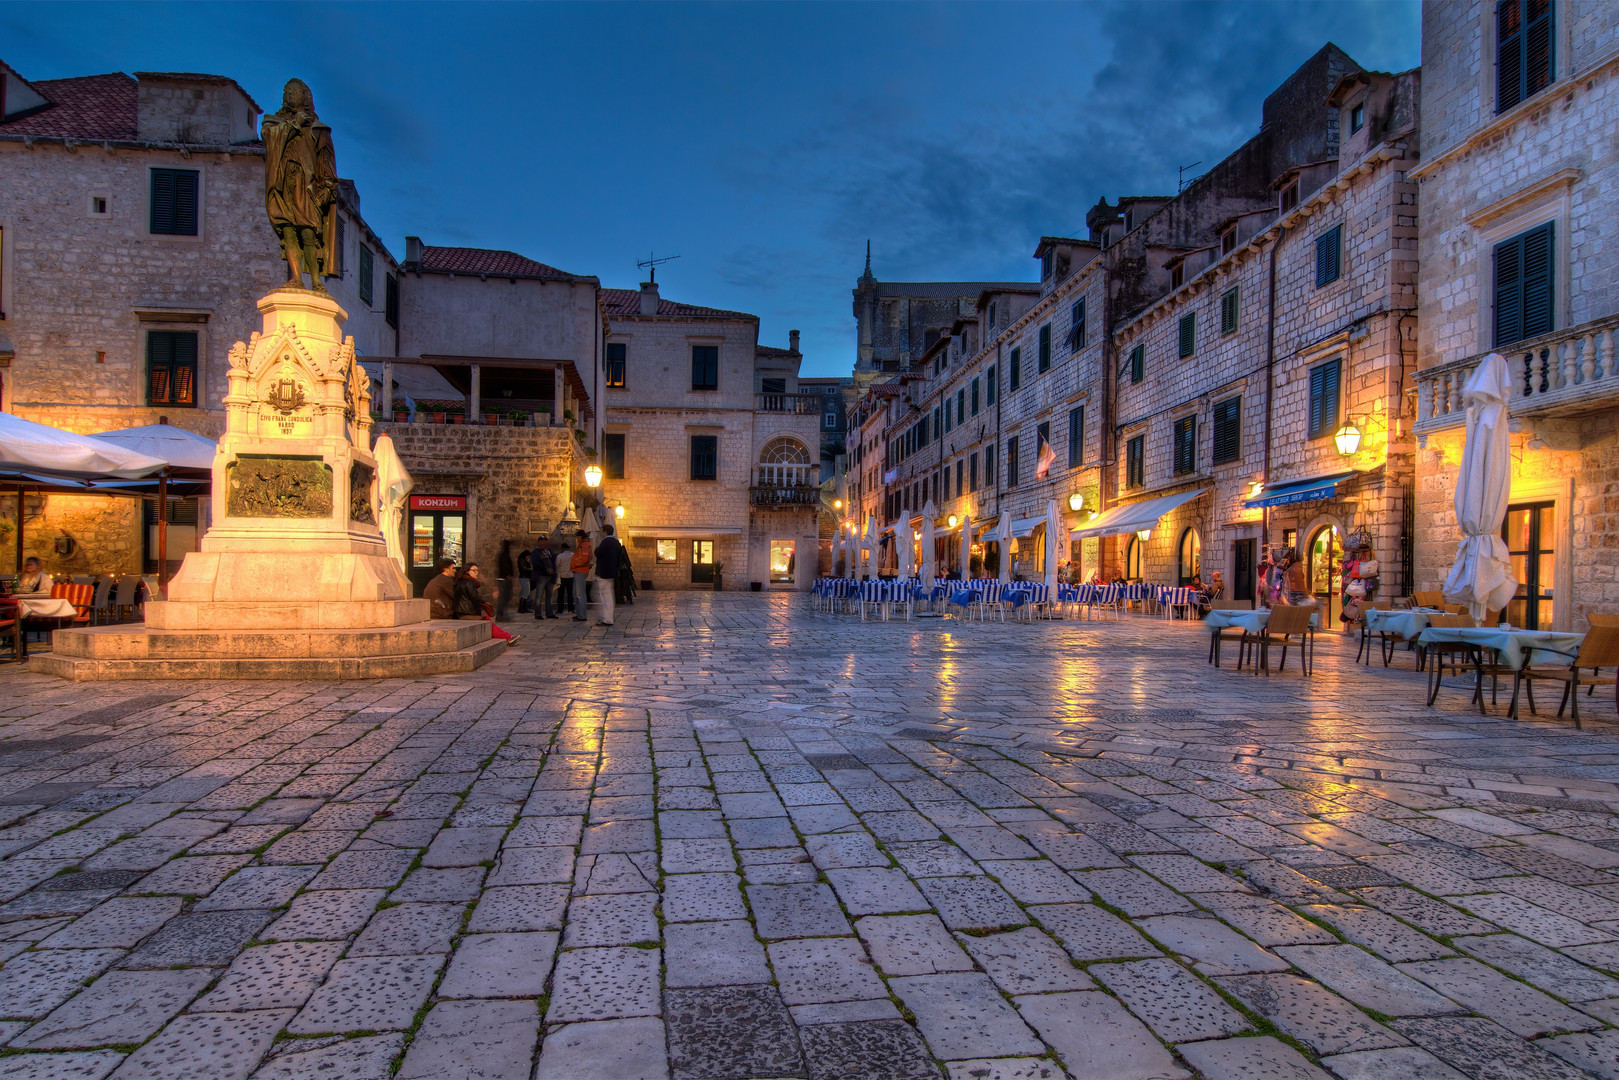 Old Dubrovnik square with restaurants